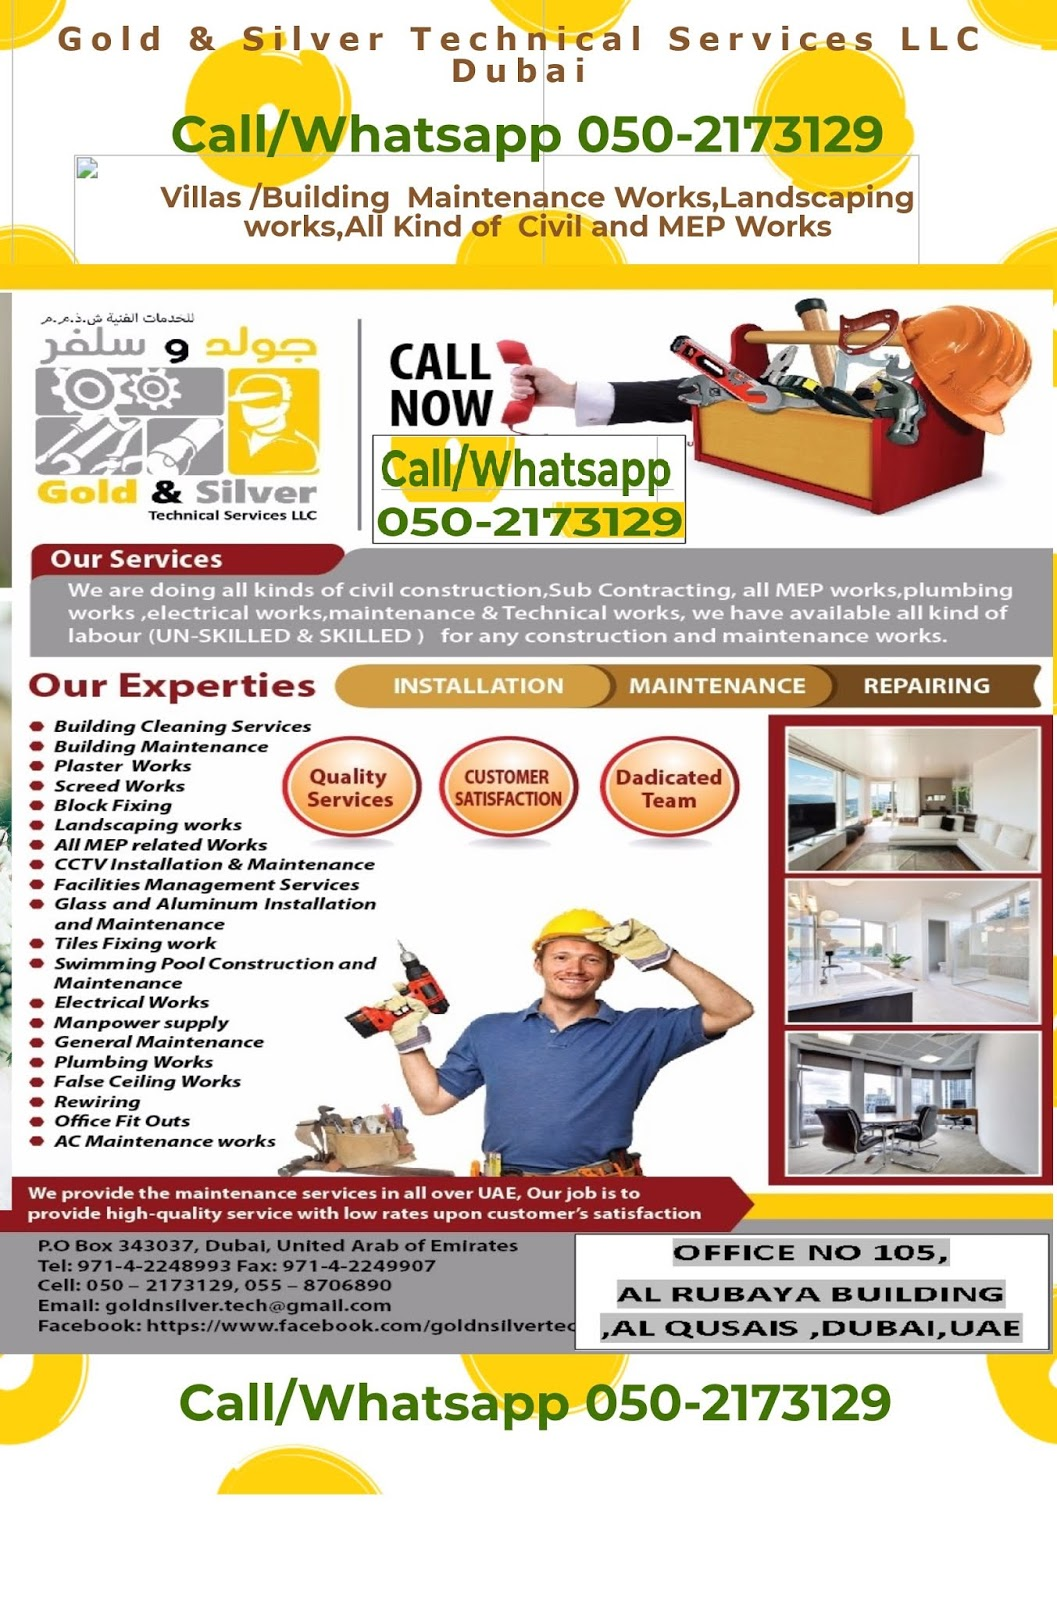 Civil Works Subcontracting ,MEP works,Electro mechanical works,Paint